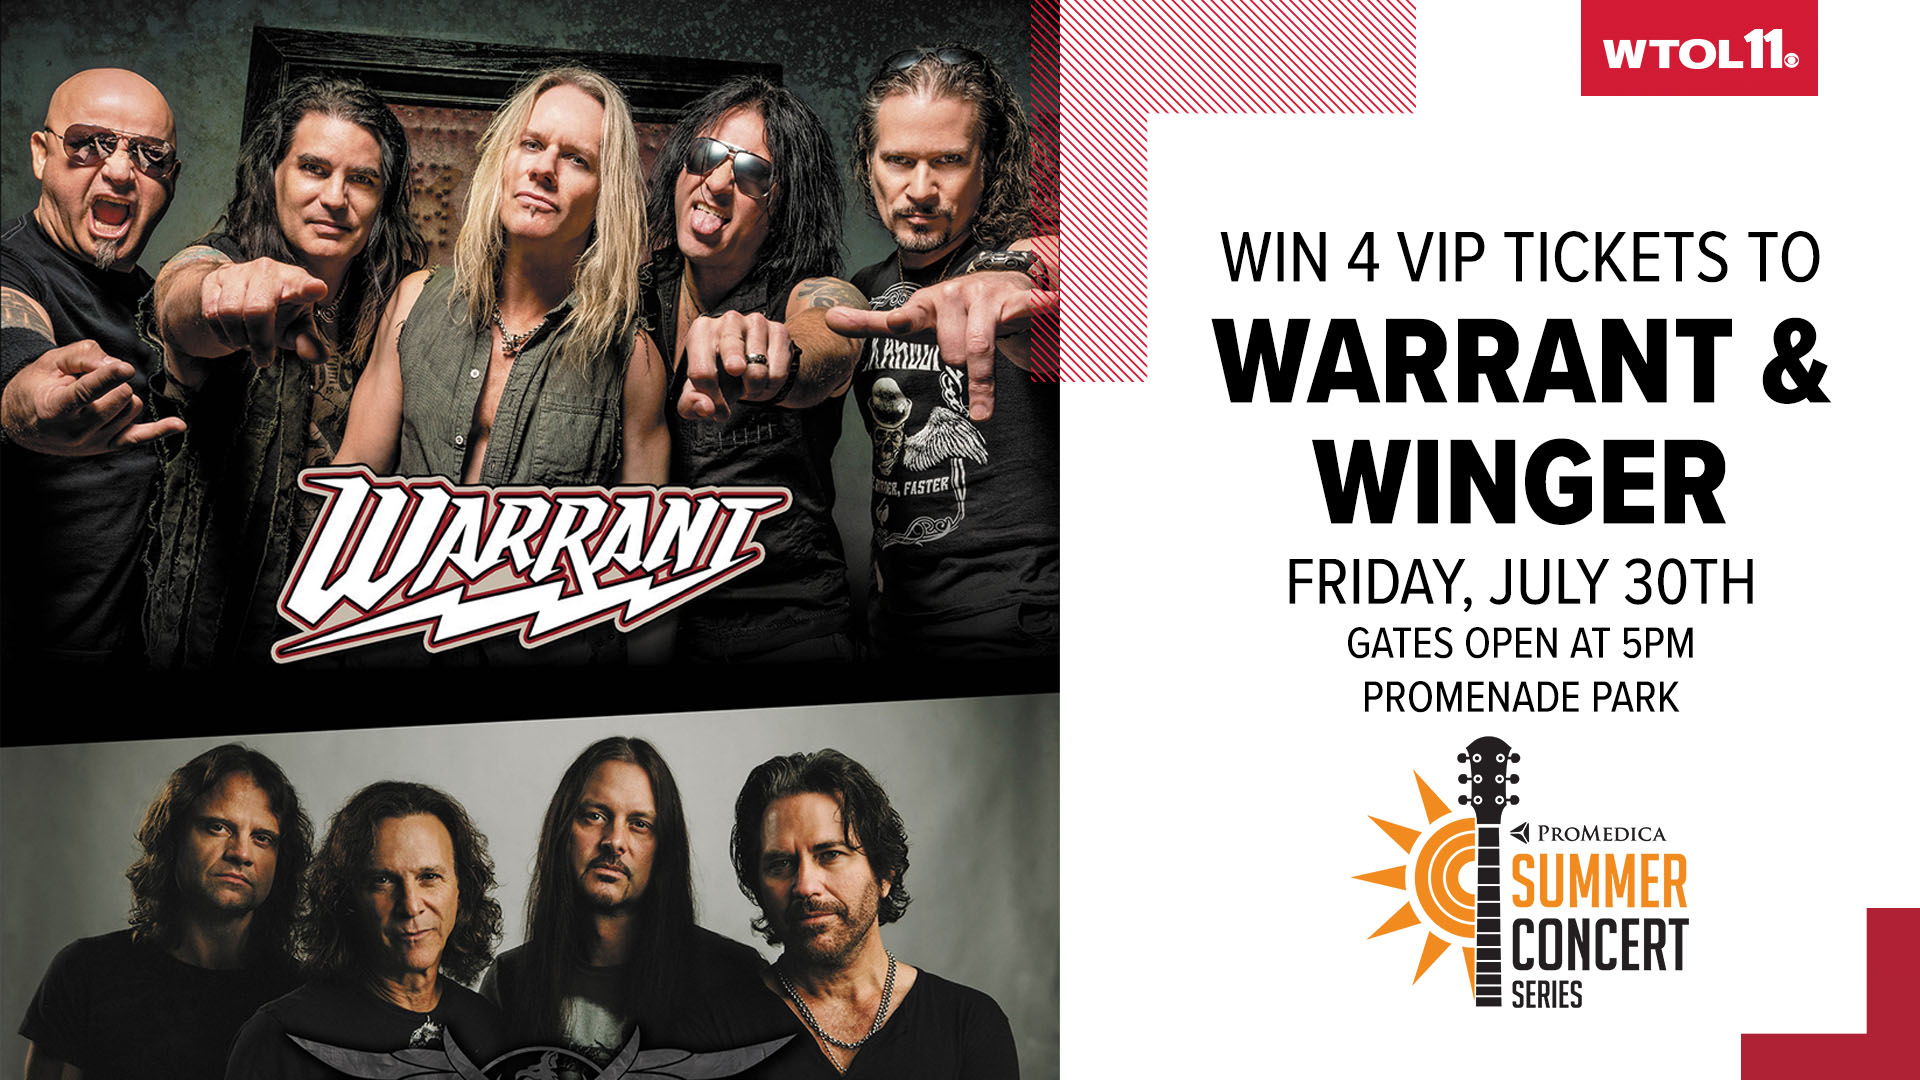 Win tickets to Warrant & Winger